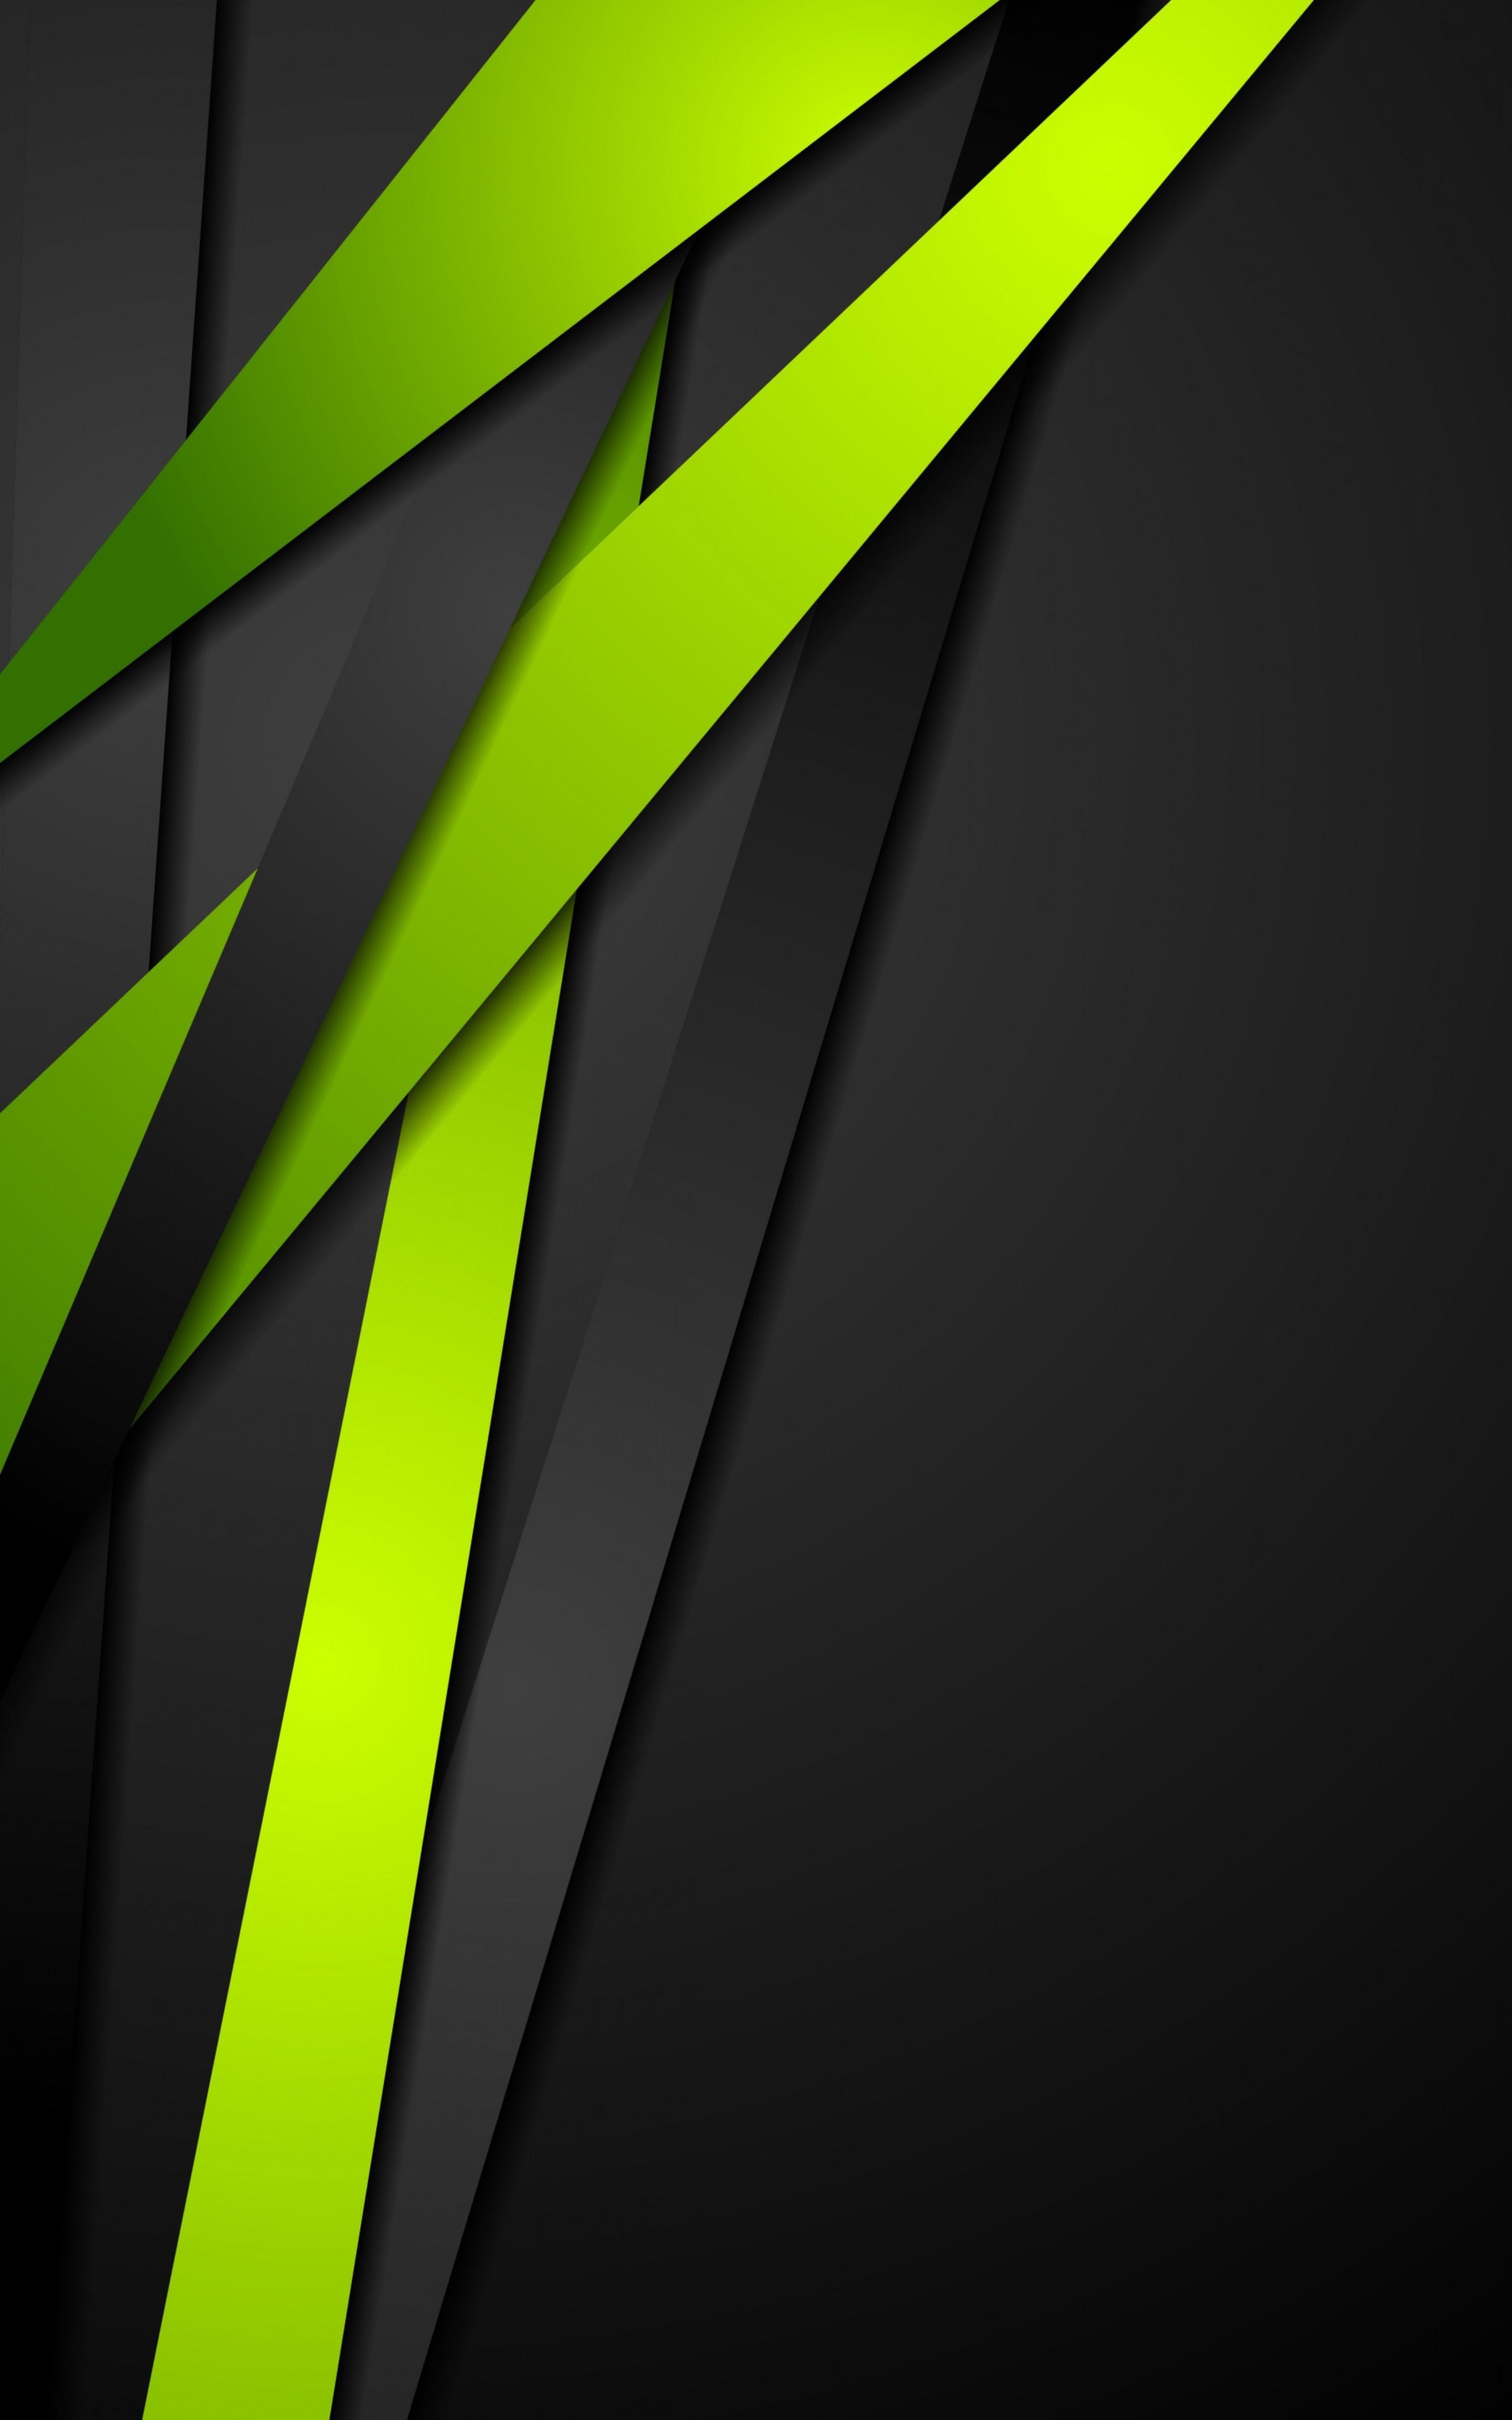 Green Black Background Design Abstract Geometry Ultrahd 4k Hd Phone Wallpaper Geometric In 2020 Black Background Design Green And Black Background Hd Phone Wallpapers